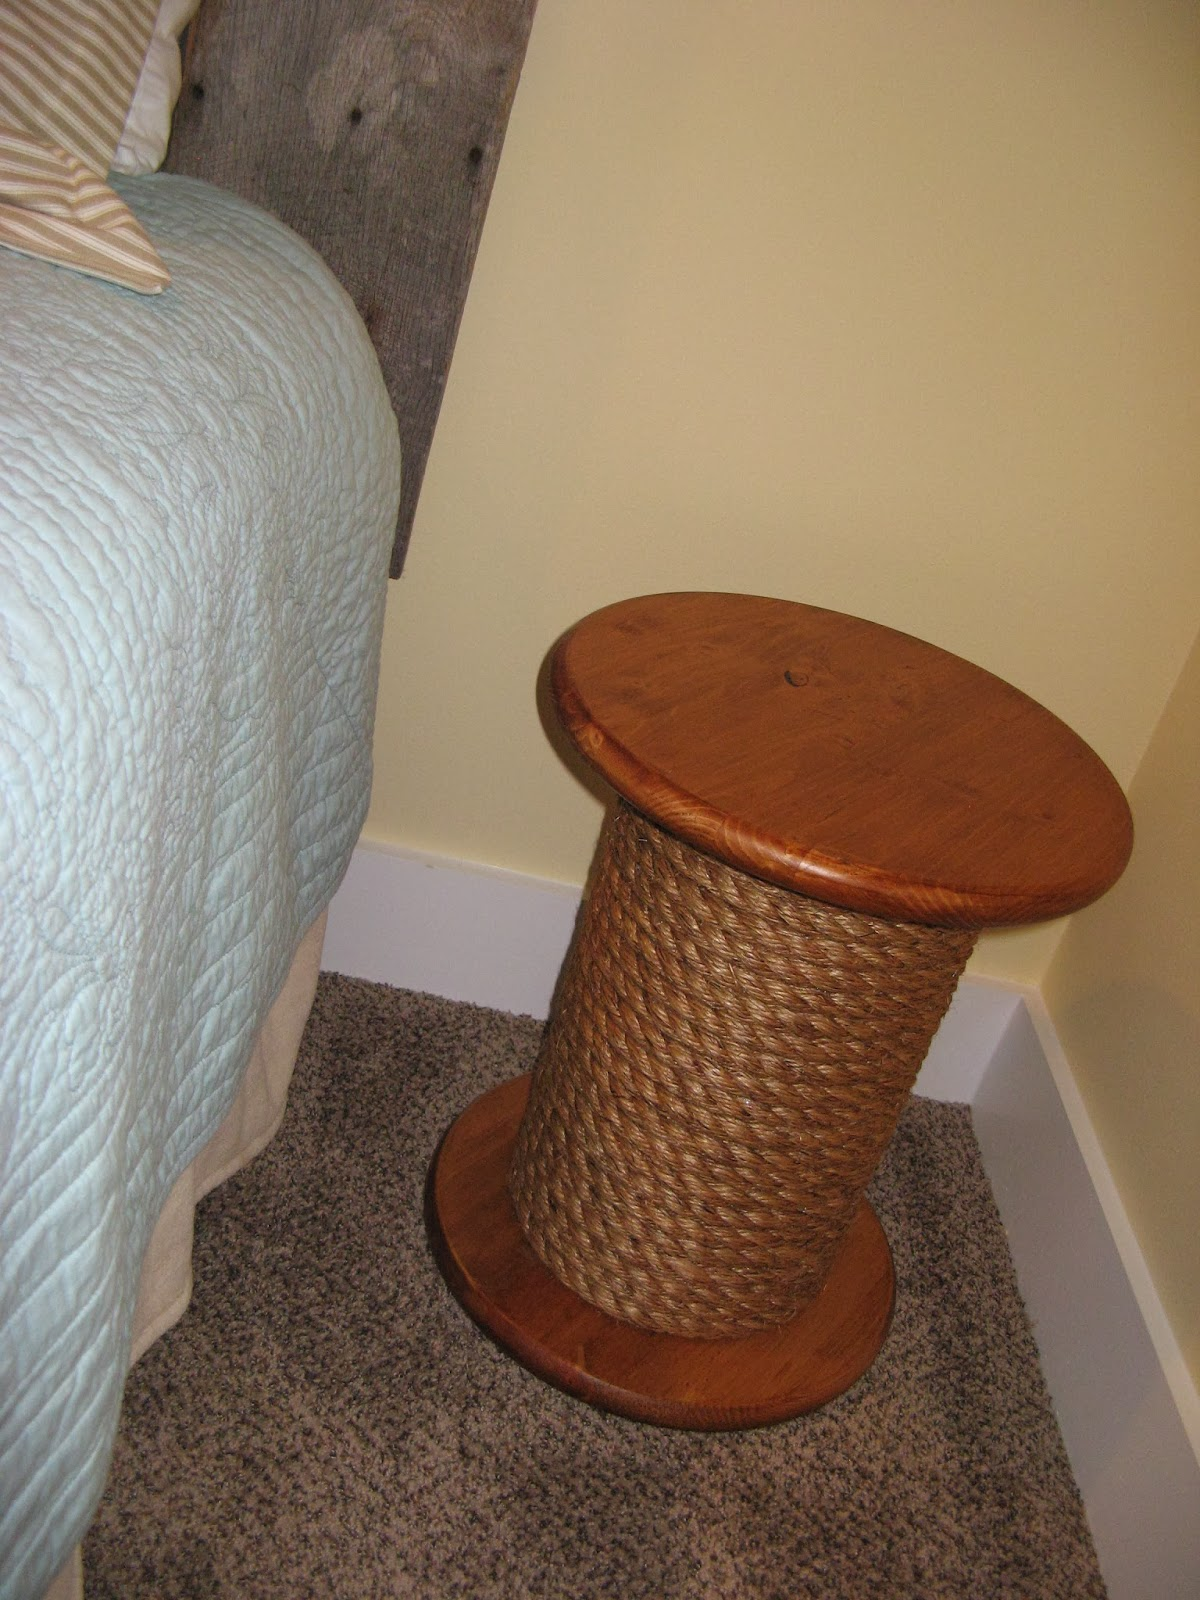 DIY Spool Table - finished product in bedroom